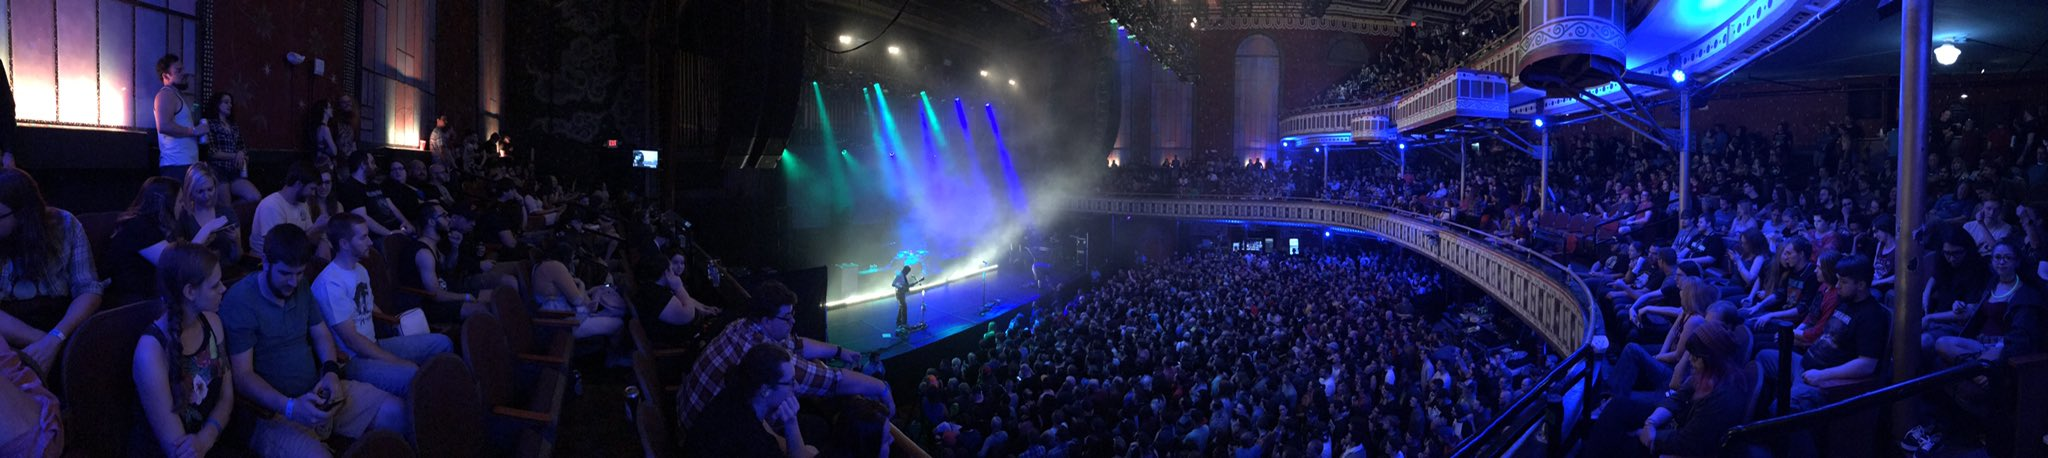 The best kind of #Neverender Is a sold out show! 🤘🏻 https://t.co/Btb8LjHbBb